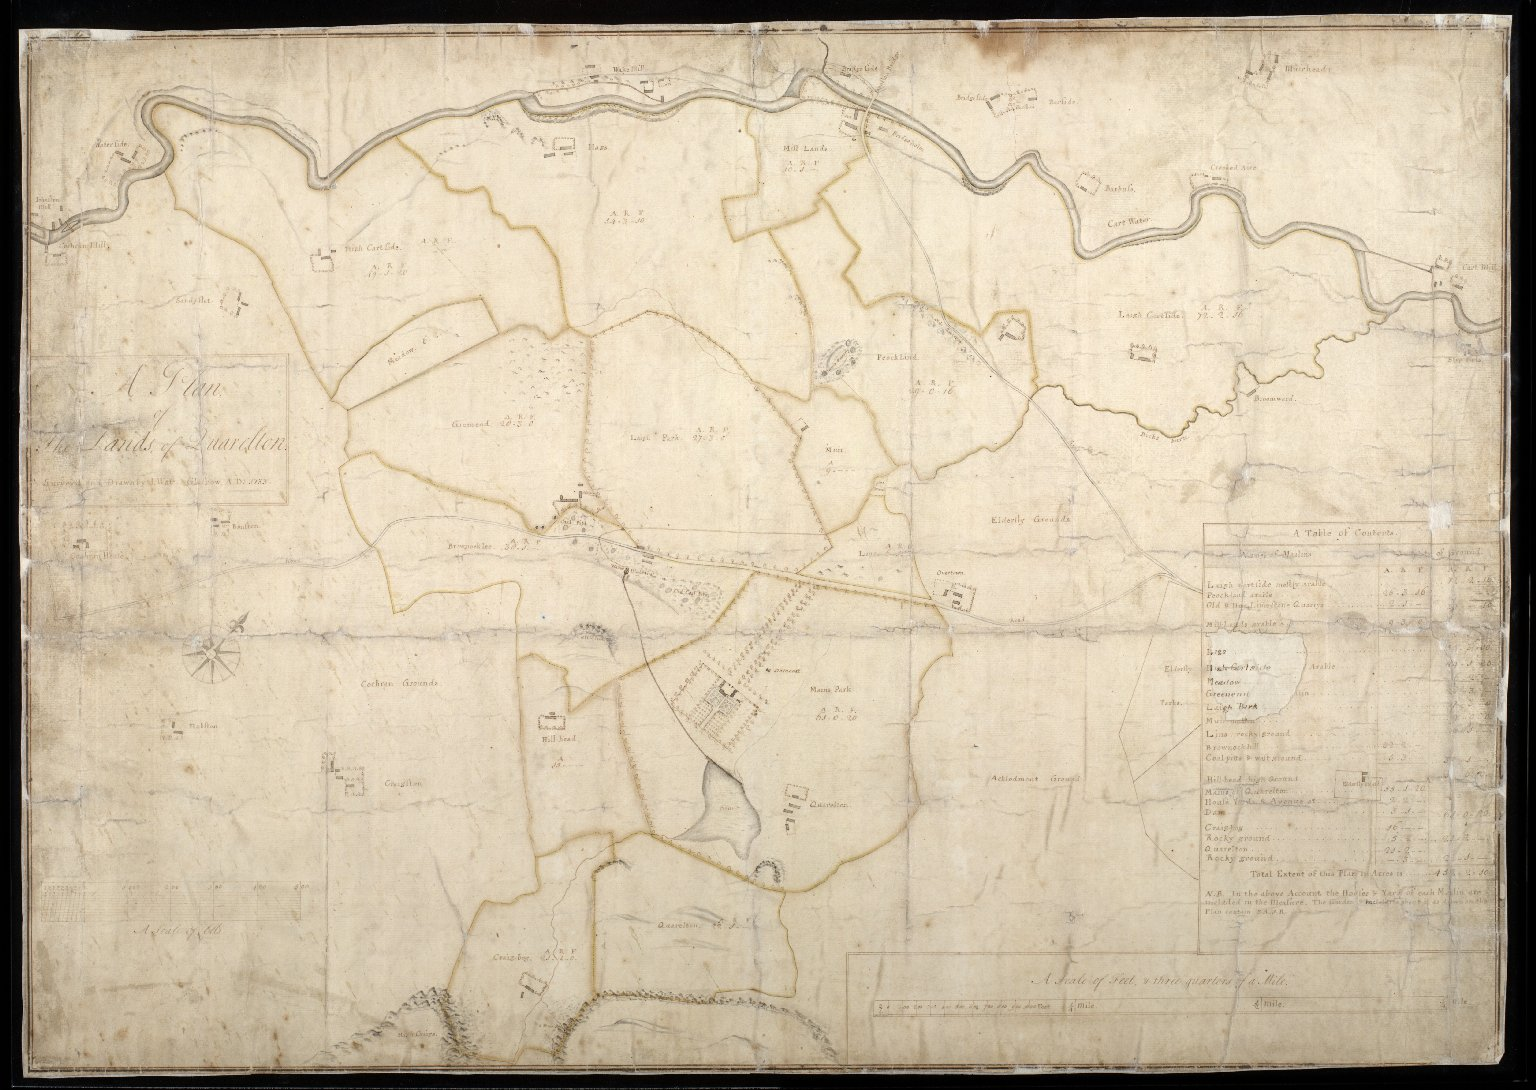 A Plan of the Lands of Quarelton [1 of 1]